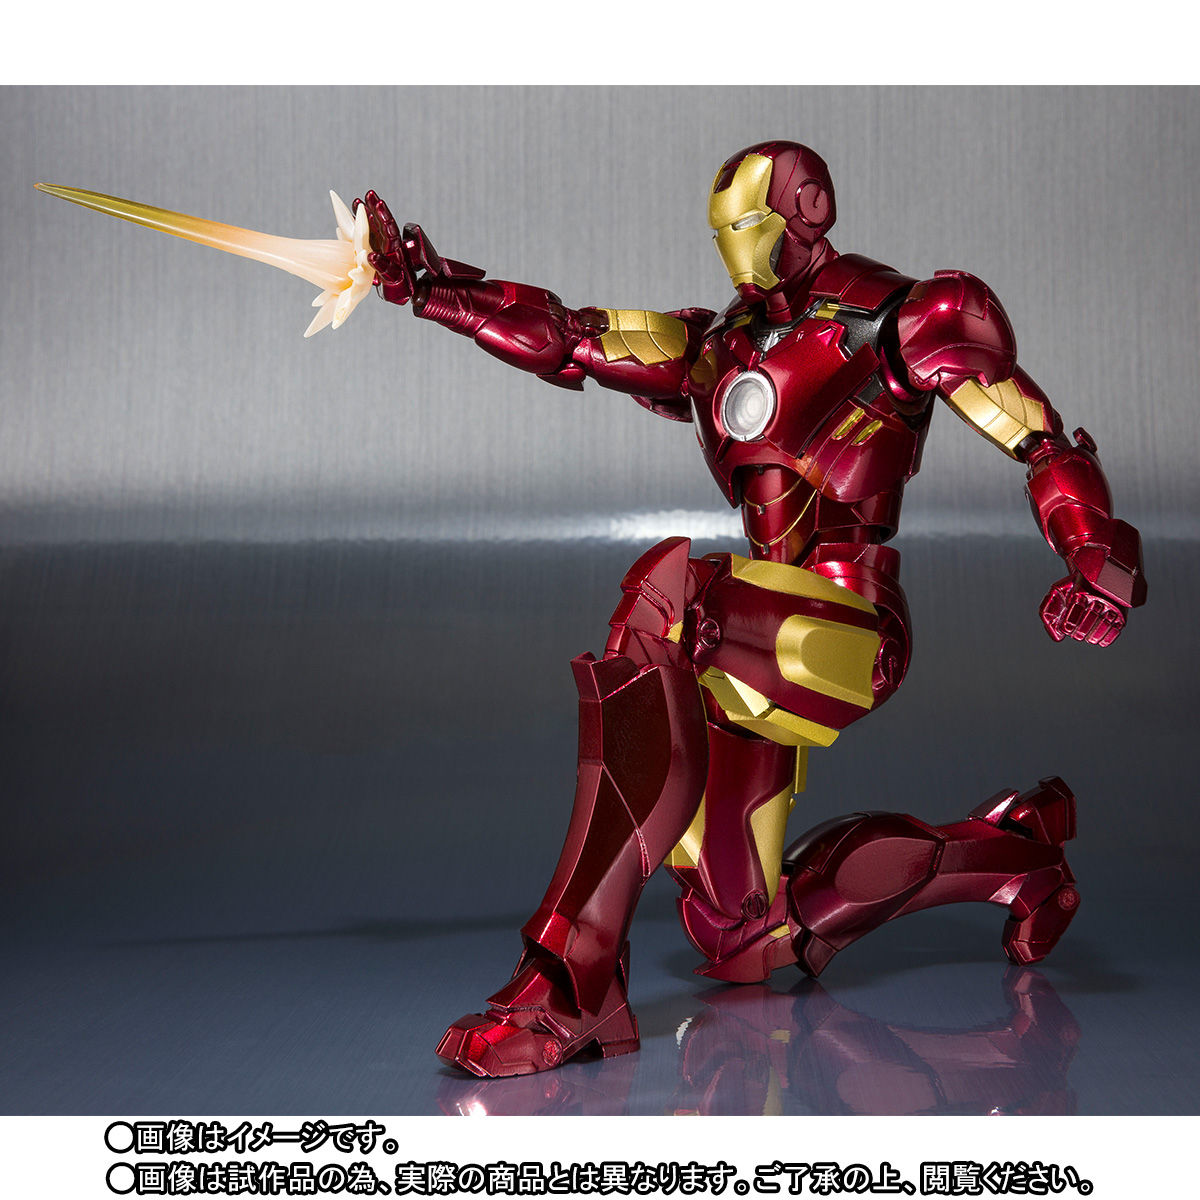 Authentic Bandai Tamashii MARVEL Legends S.H Figuarts Iron Man Hall Of Armor X2